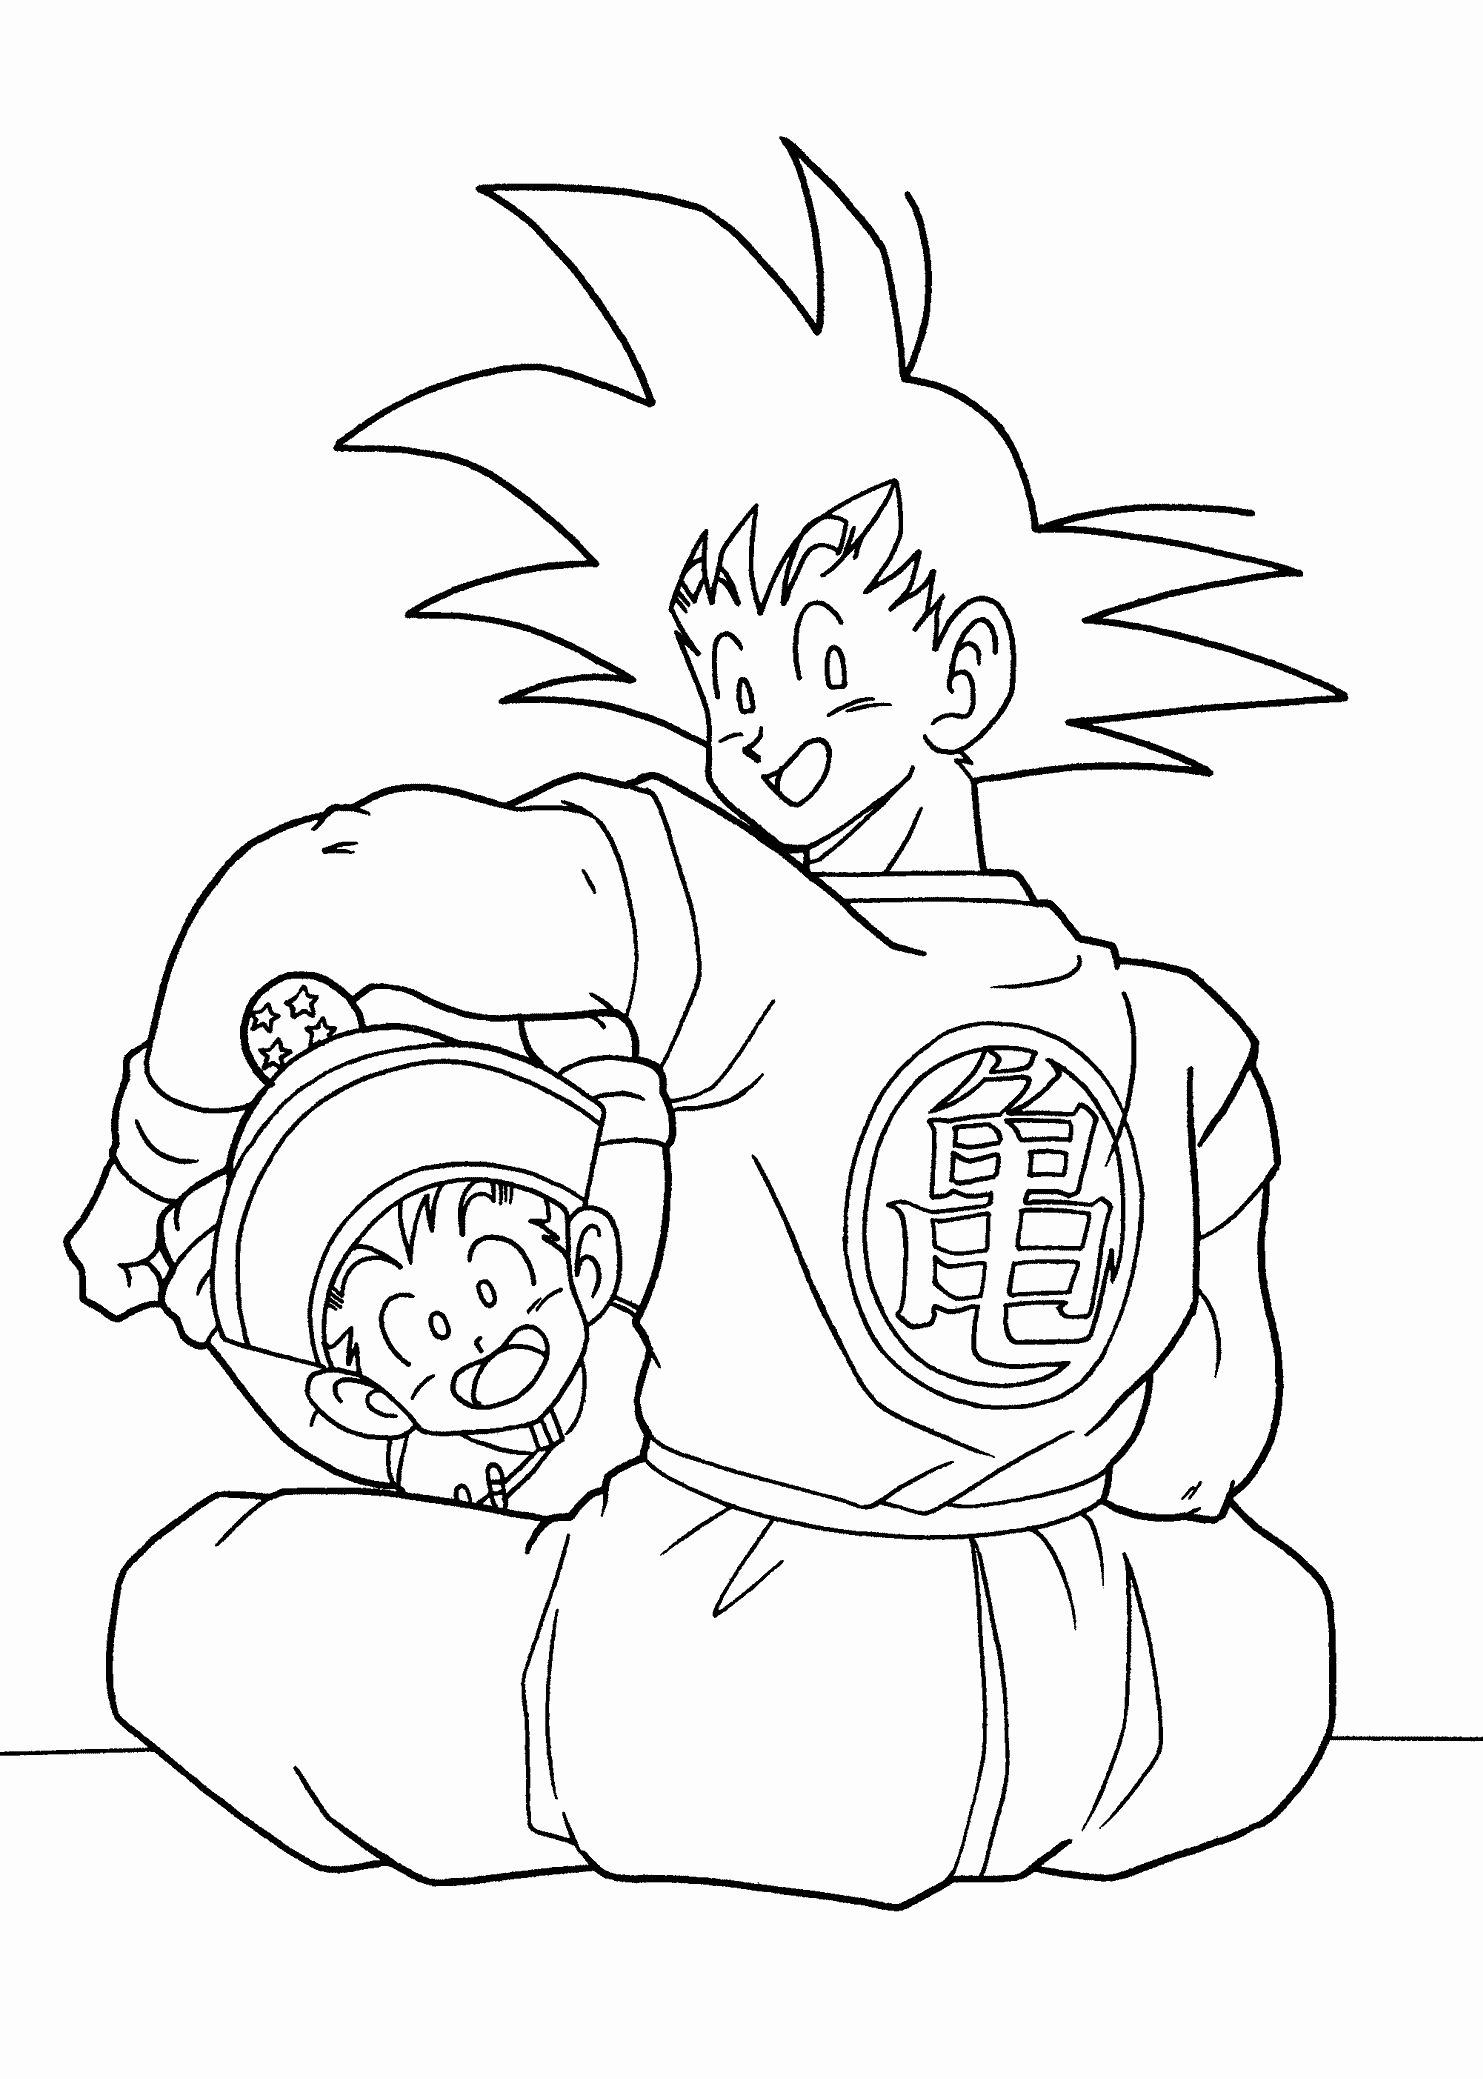 Dragon Ball Z Coloring Book Lovely Dragon Ball Anime Goku And Gohan Coloring Pages For Kids Dragon Coloring Page Dragon Ball Artwork Cartoon Coloring Pages